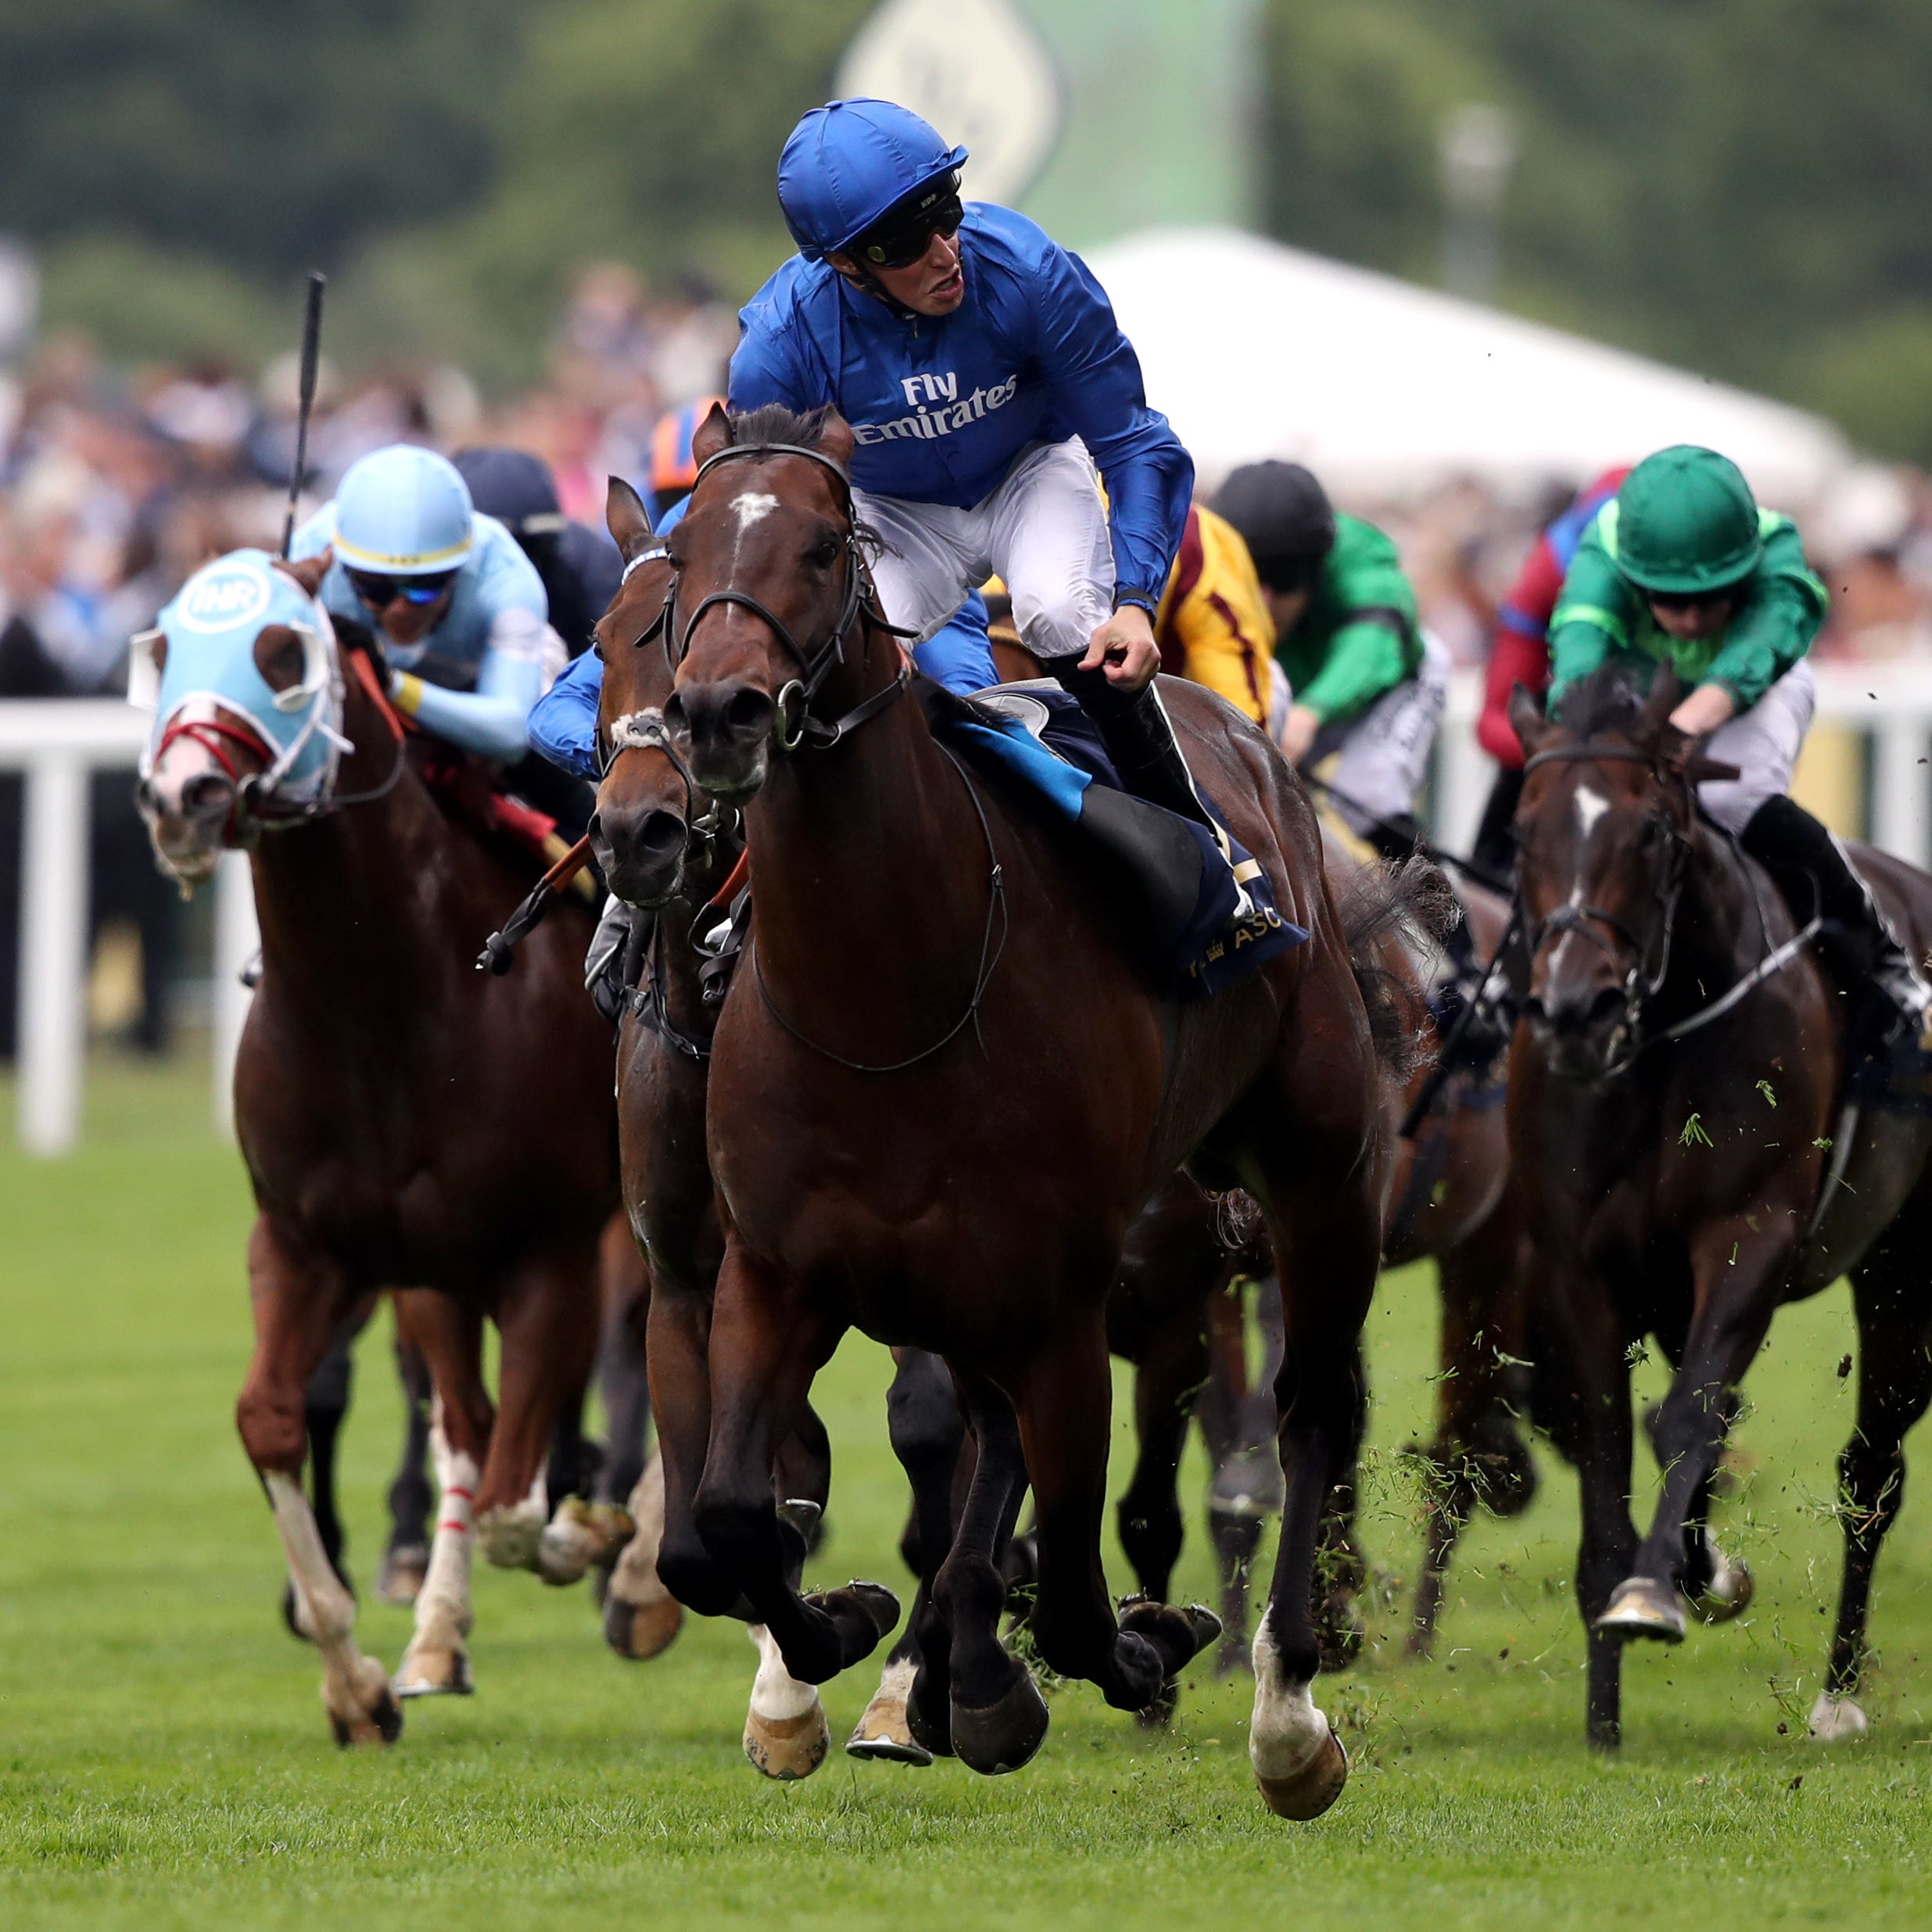 Blue Point comes home clear in last year's King's Stand